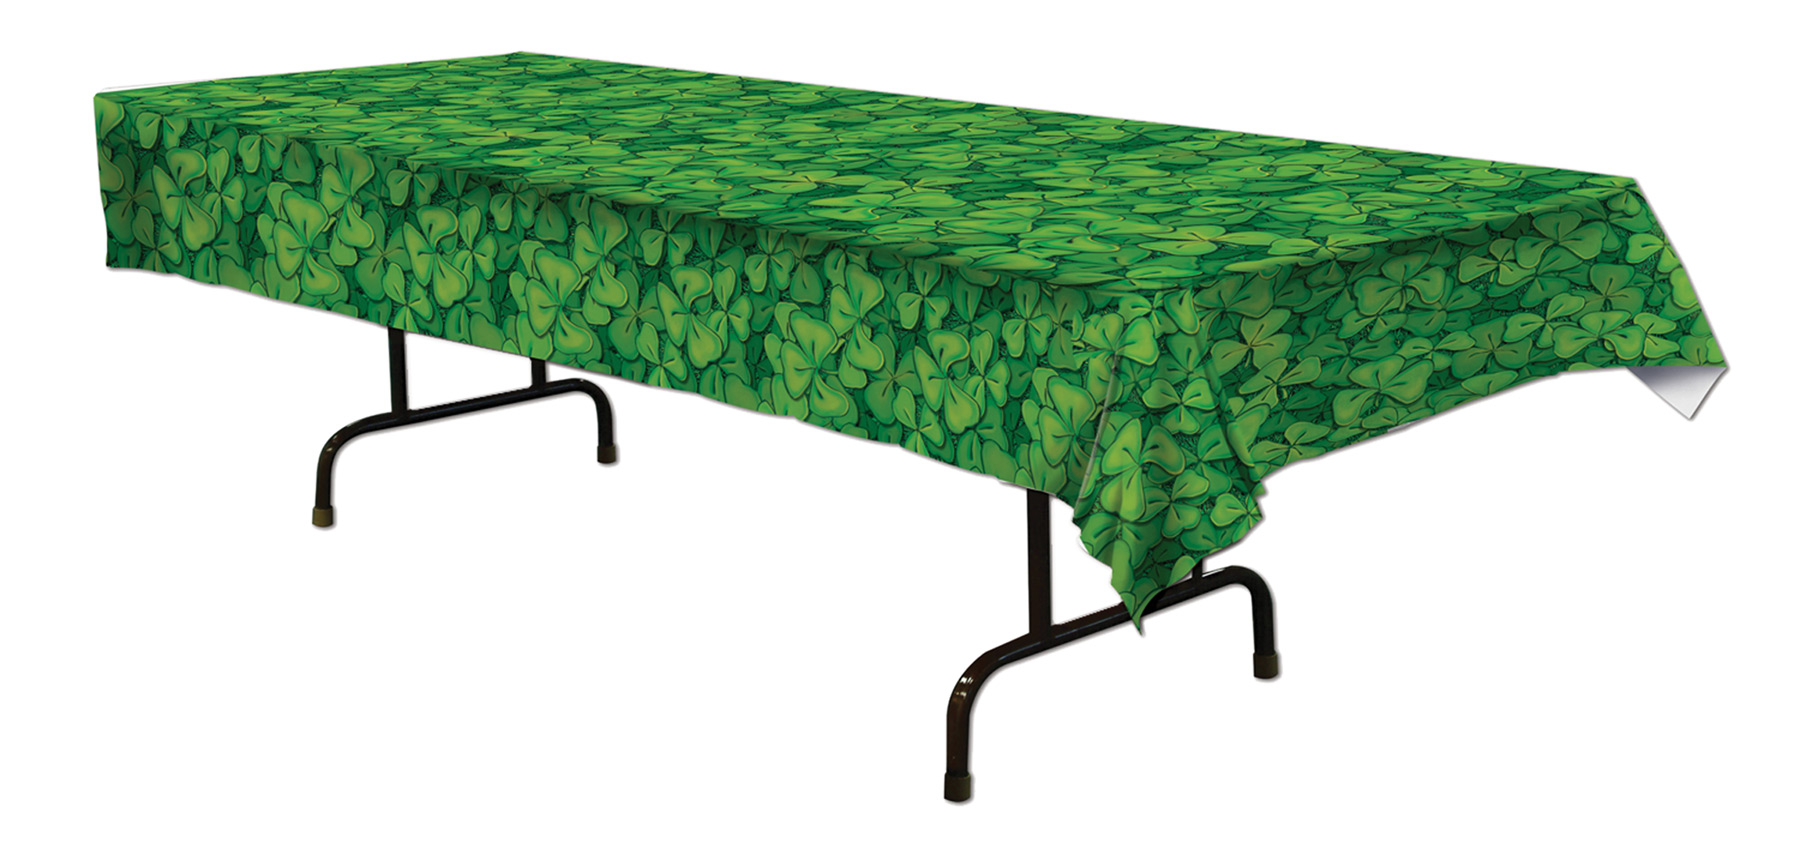 Featured Image for Shamrock Table Cover